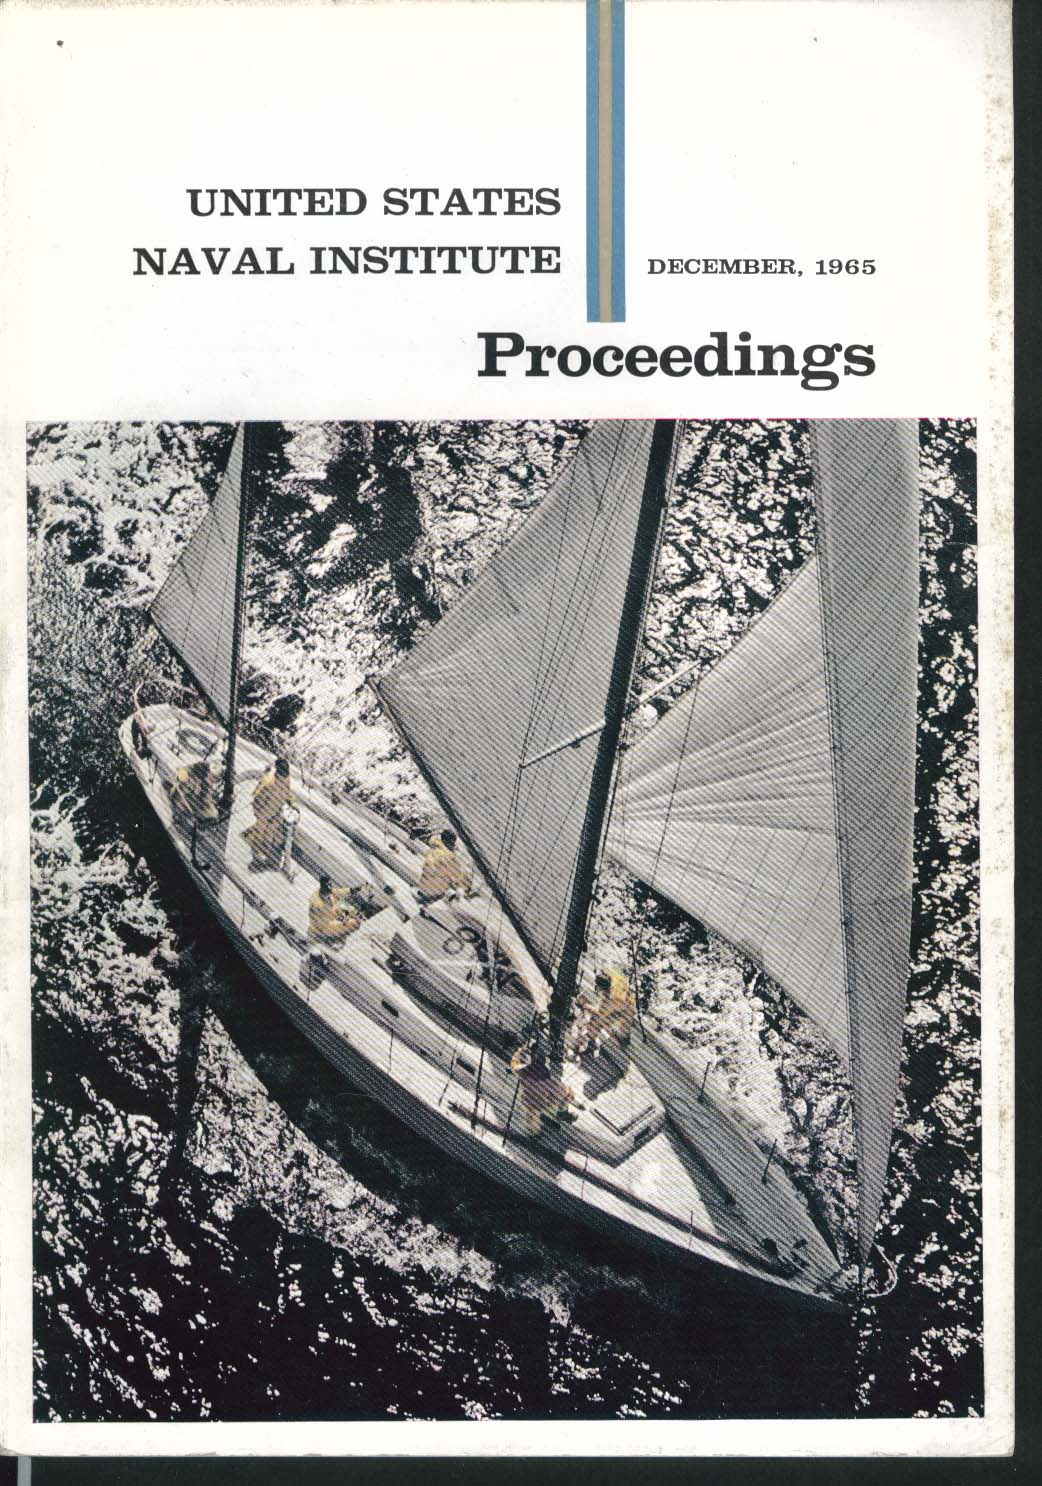 UNITED STATES NAVAL INSTITUTE PROCEEDINGS Masatake Okumiya Japan Defense 12 1965